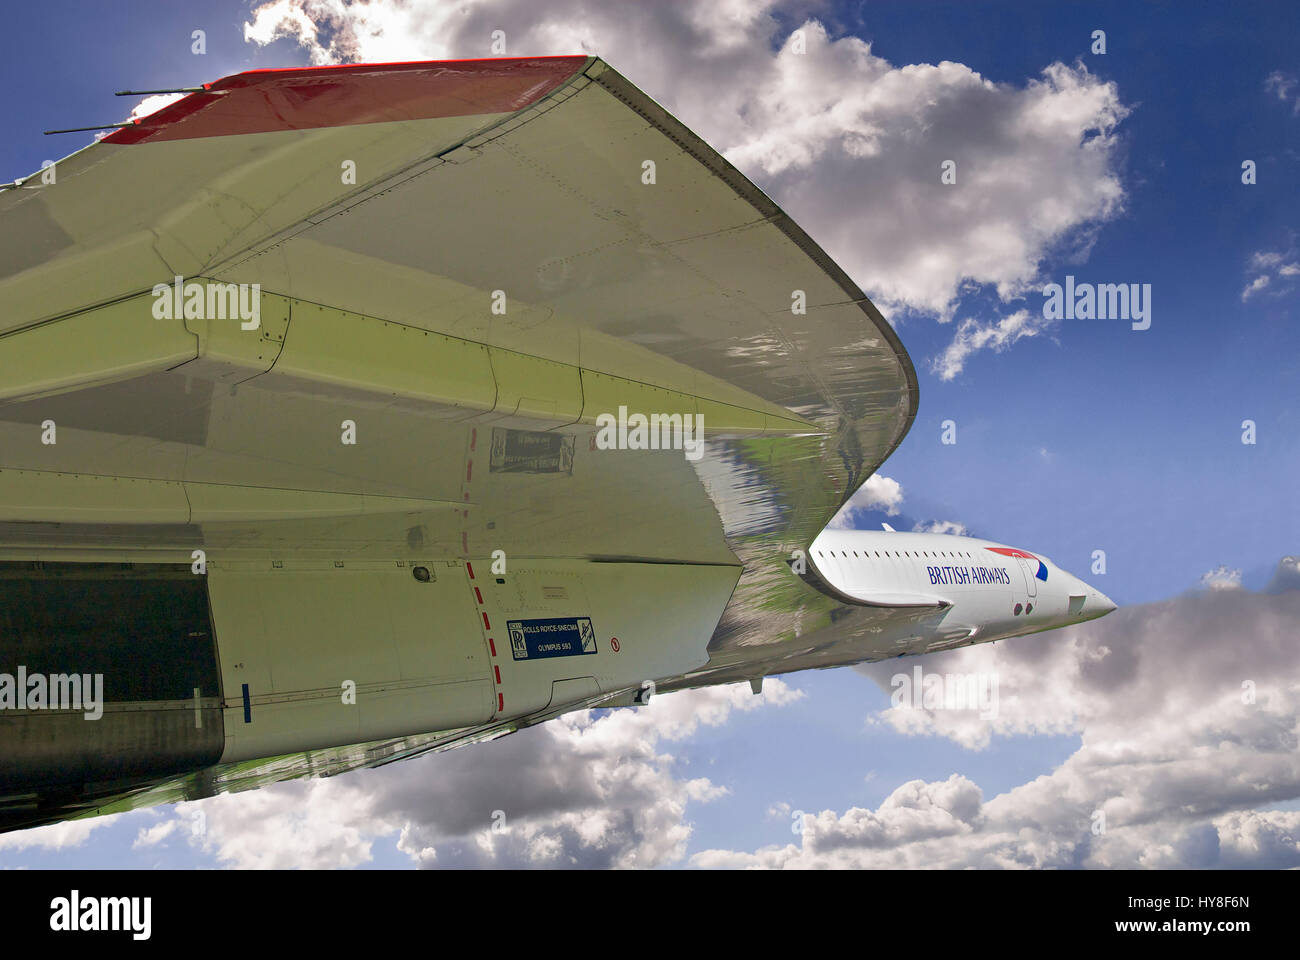 Concorde nose against blue sky and clouds. Airbrushed to simulate in flight. - Stock Image